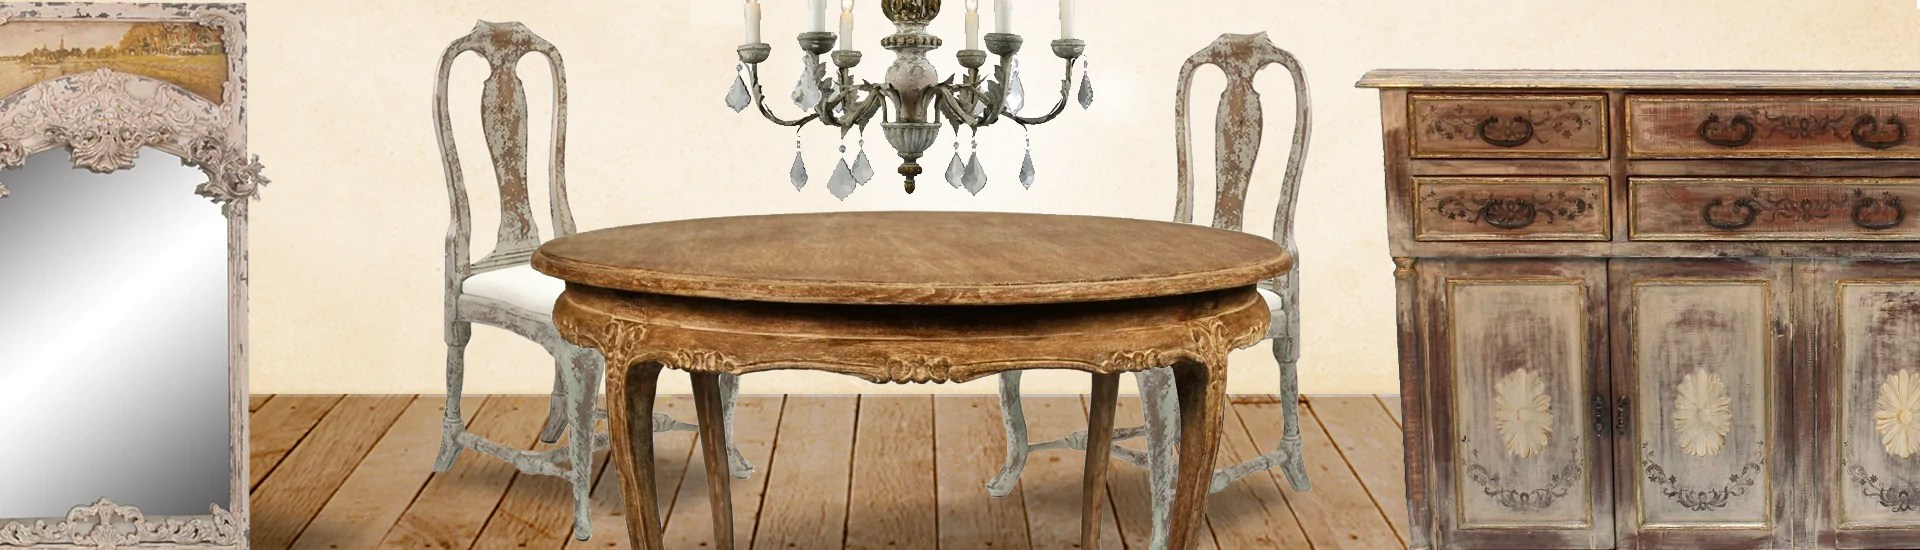 French Farmhouse Shabby Chic Furniture And Chandeliers Belle Escape